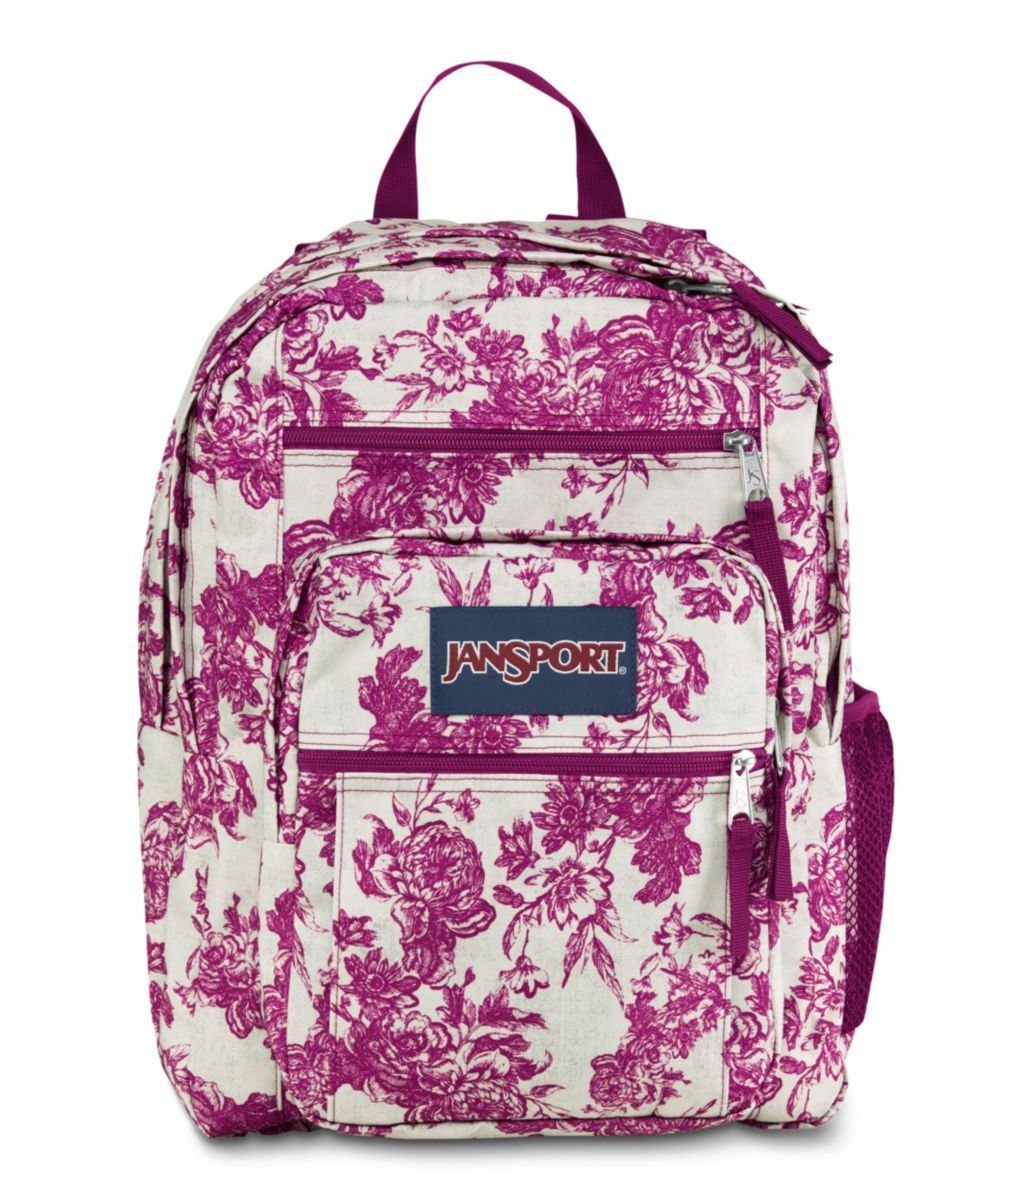 jansport big student backpack school bag